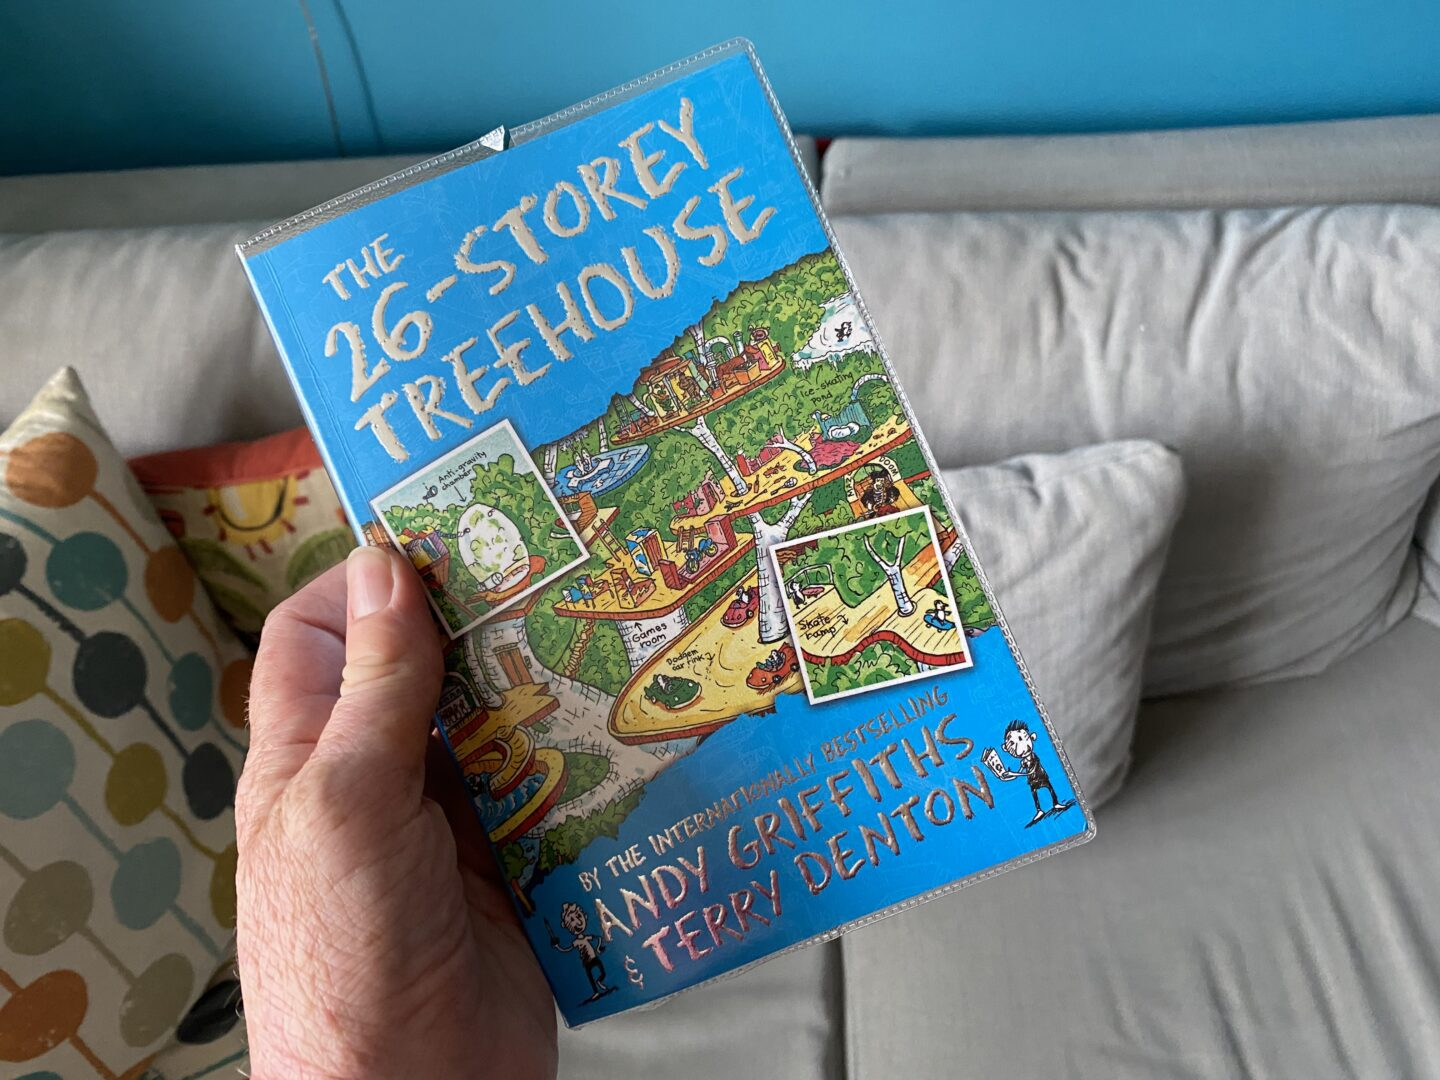 a copy of the 26-storey treehouse being held by an adult hand